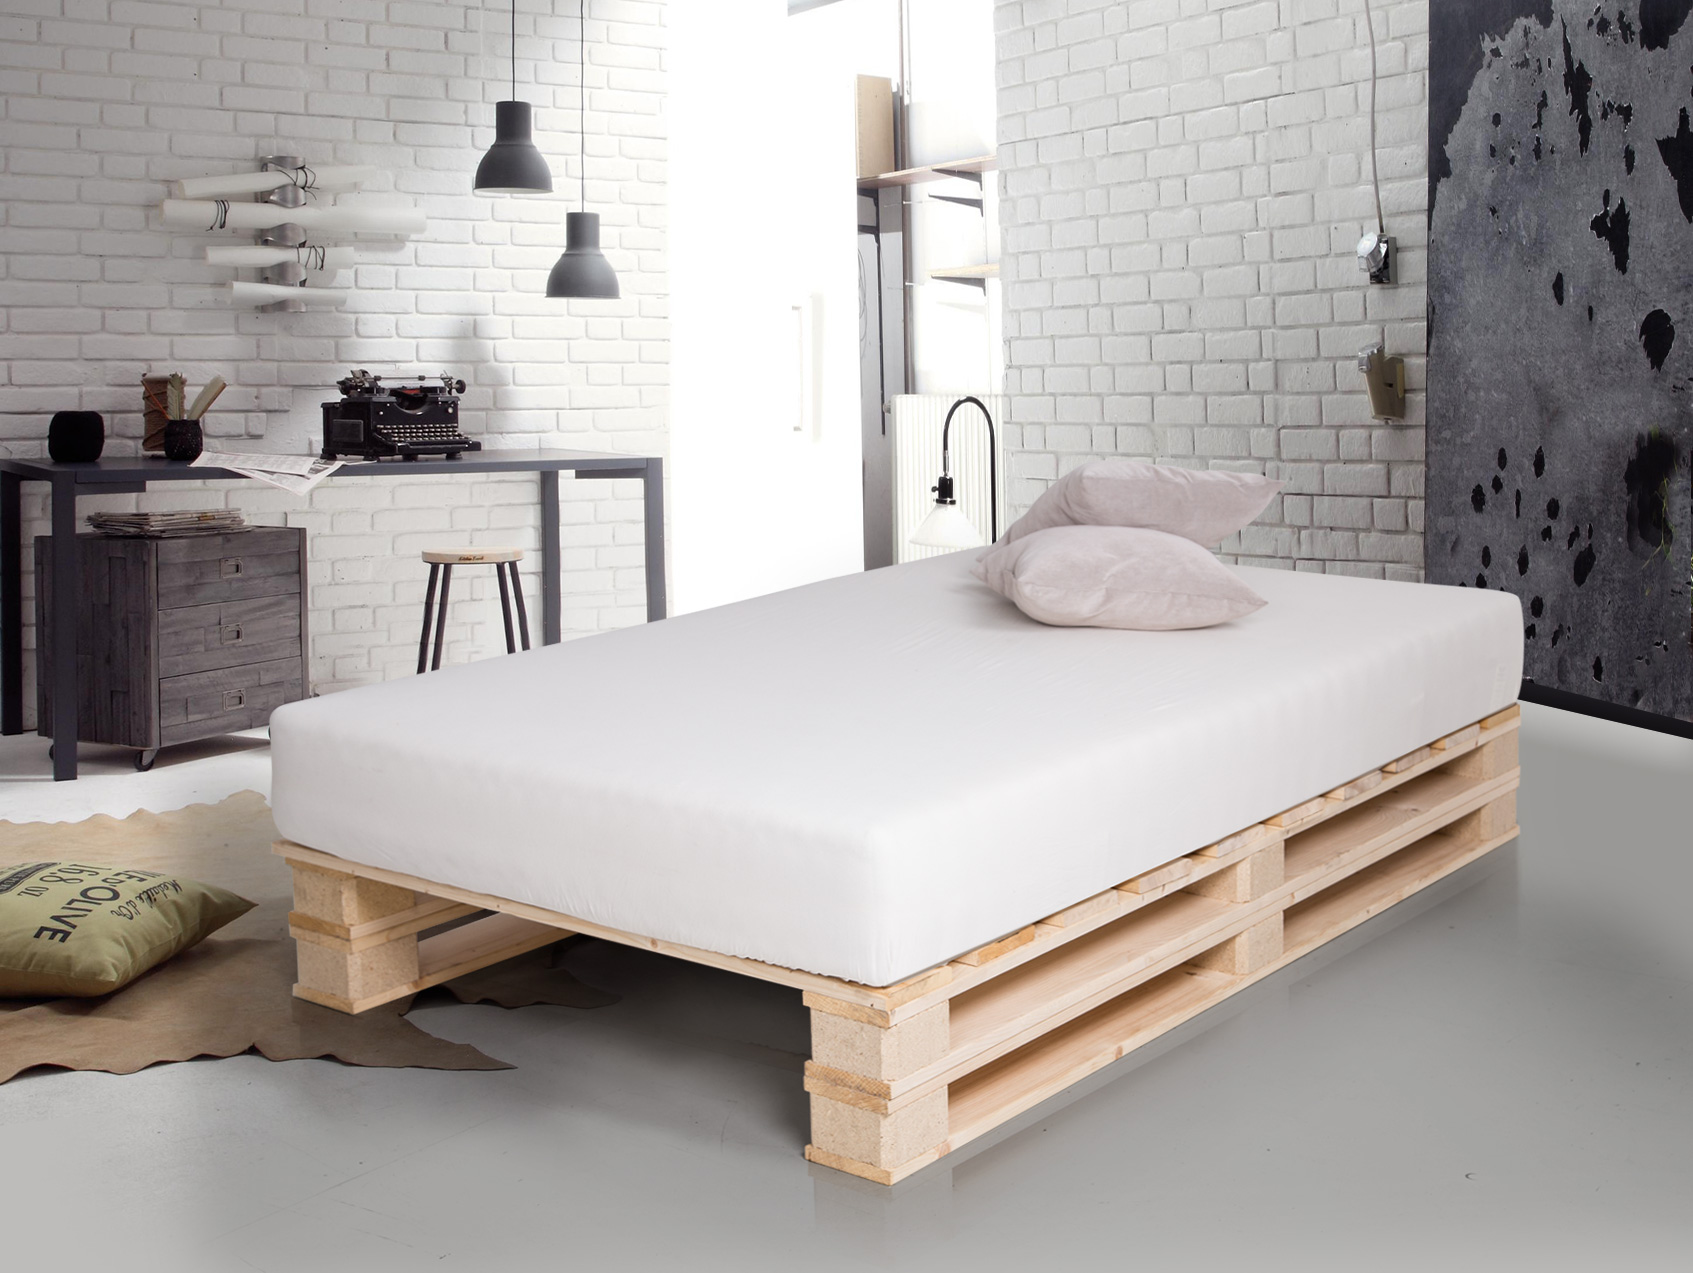 paletti duo massivholzbett aus paletten 90 x 200 cm fichte natur. Black Bedroom Furniture Sets. Home Design Ideas